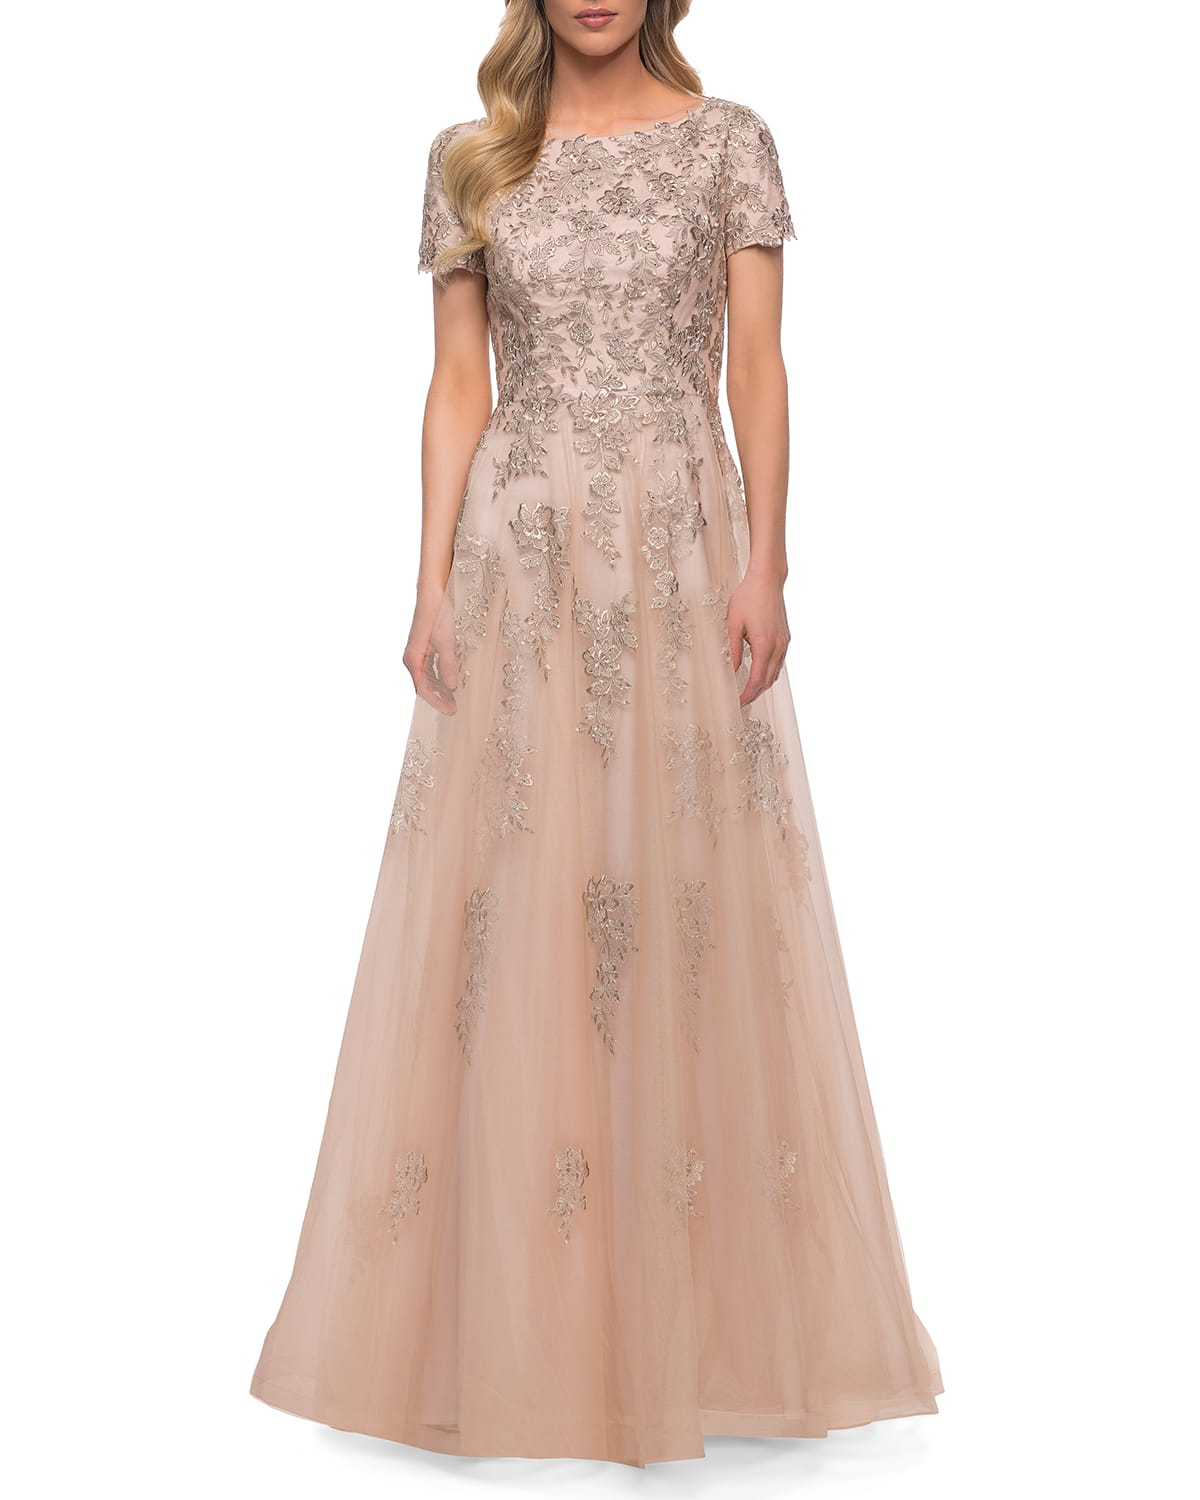 Tulle Lace A-Line Short-Sleeve Gown